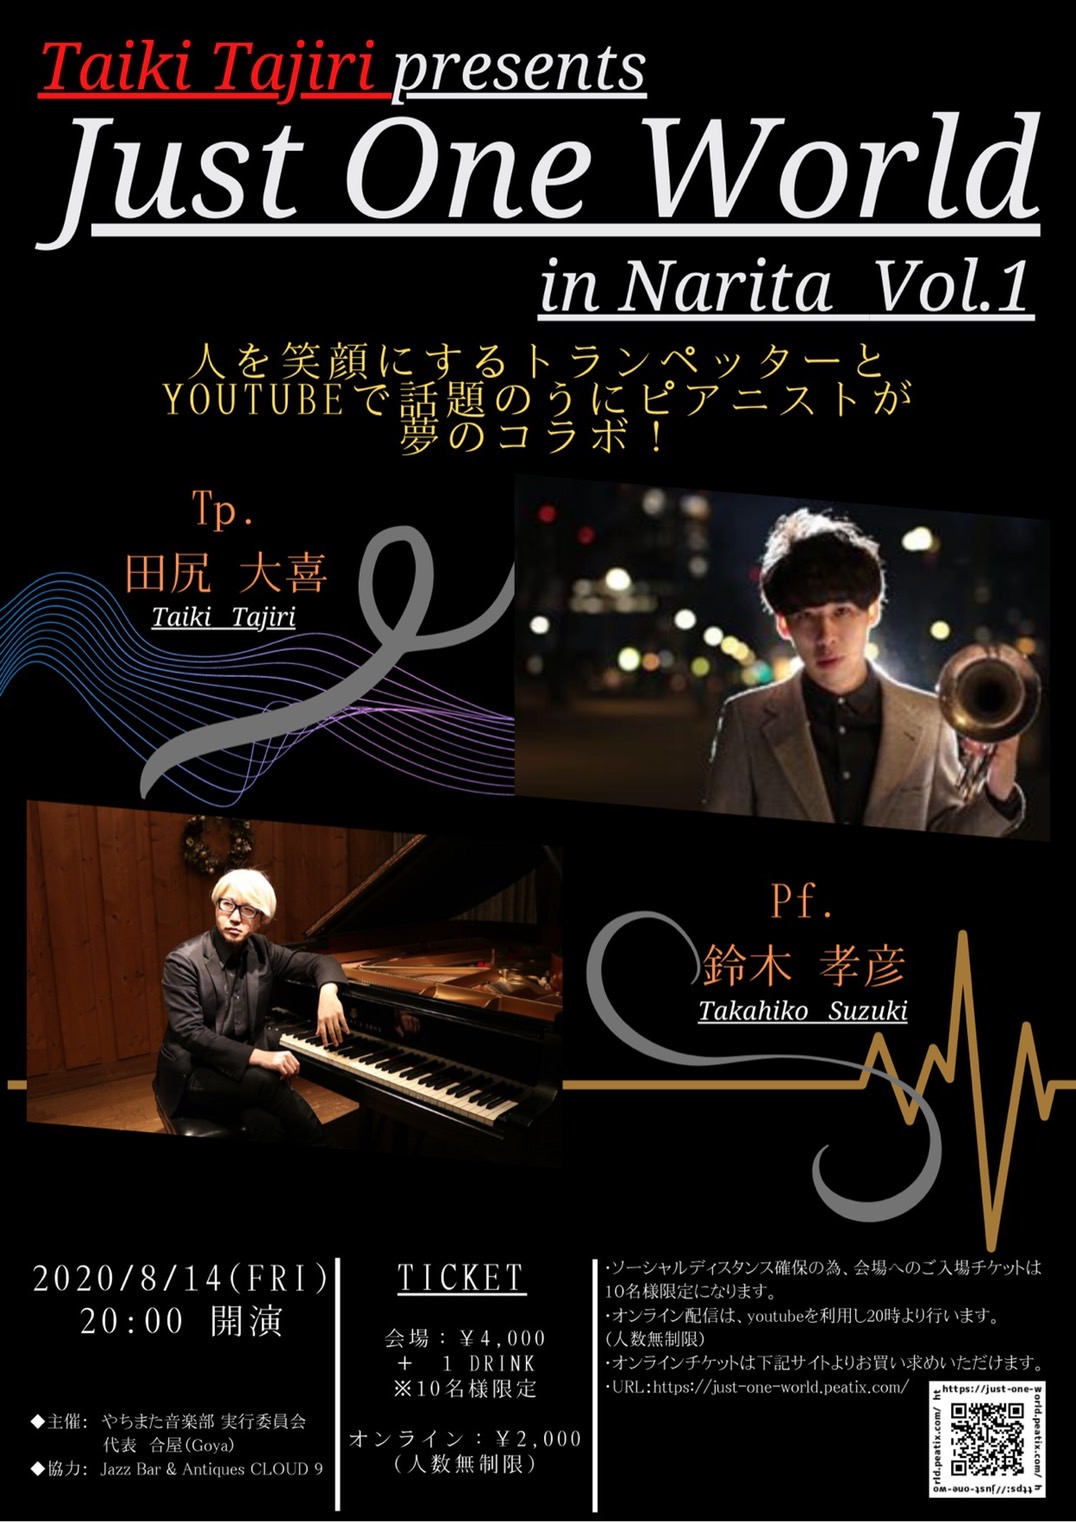 Just One World in Narita Vol.1